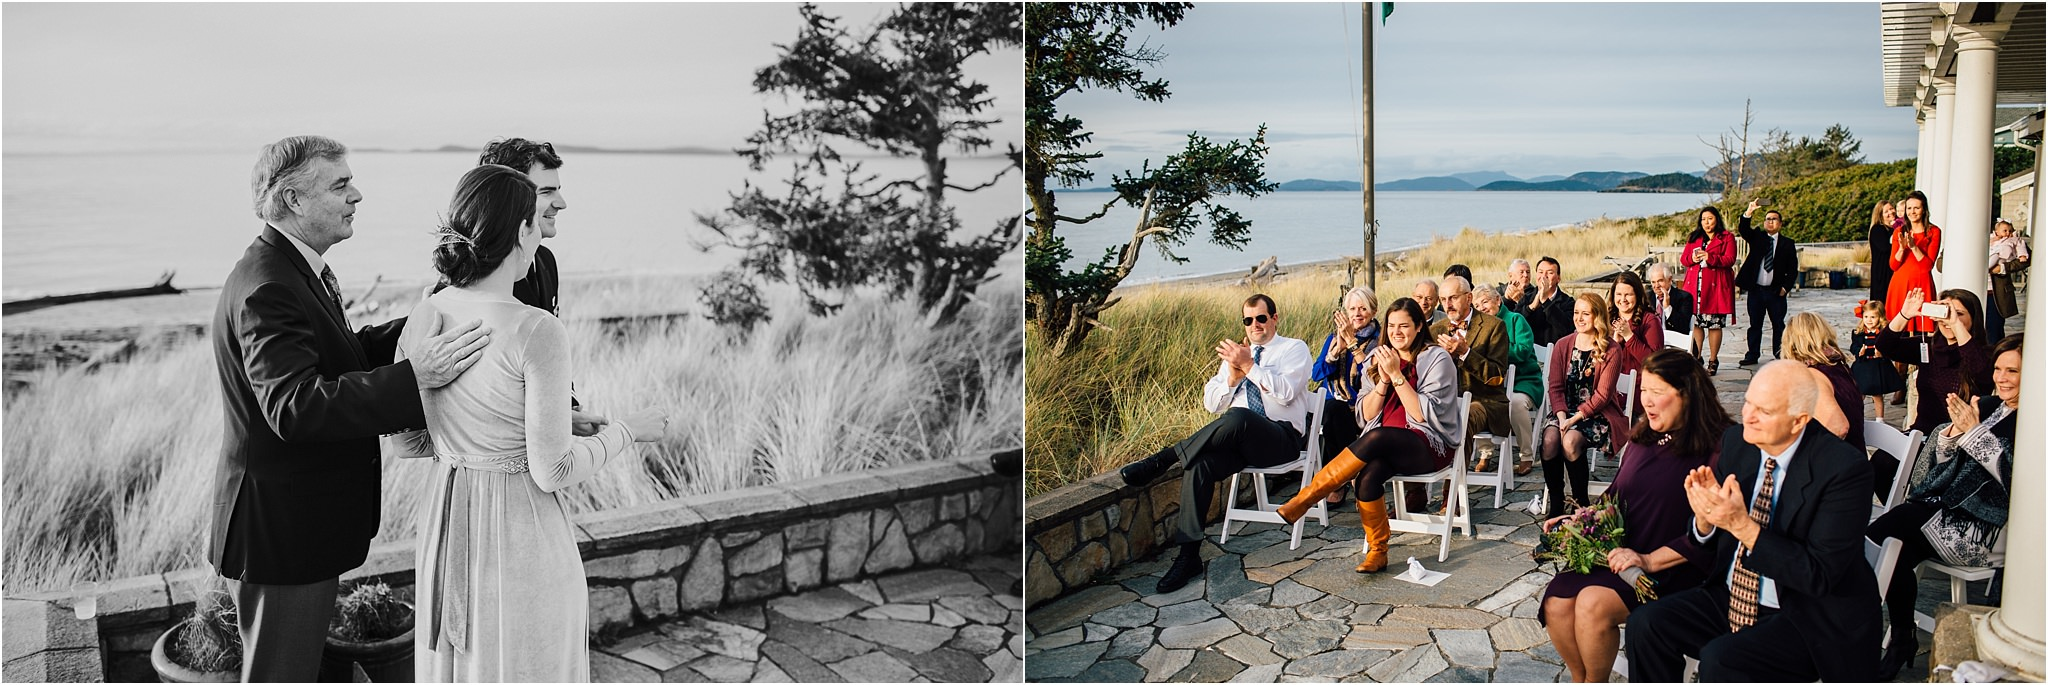 Whidbey-Island-Family-Photographer-Kara-Chappell-Photography_0305.jpg